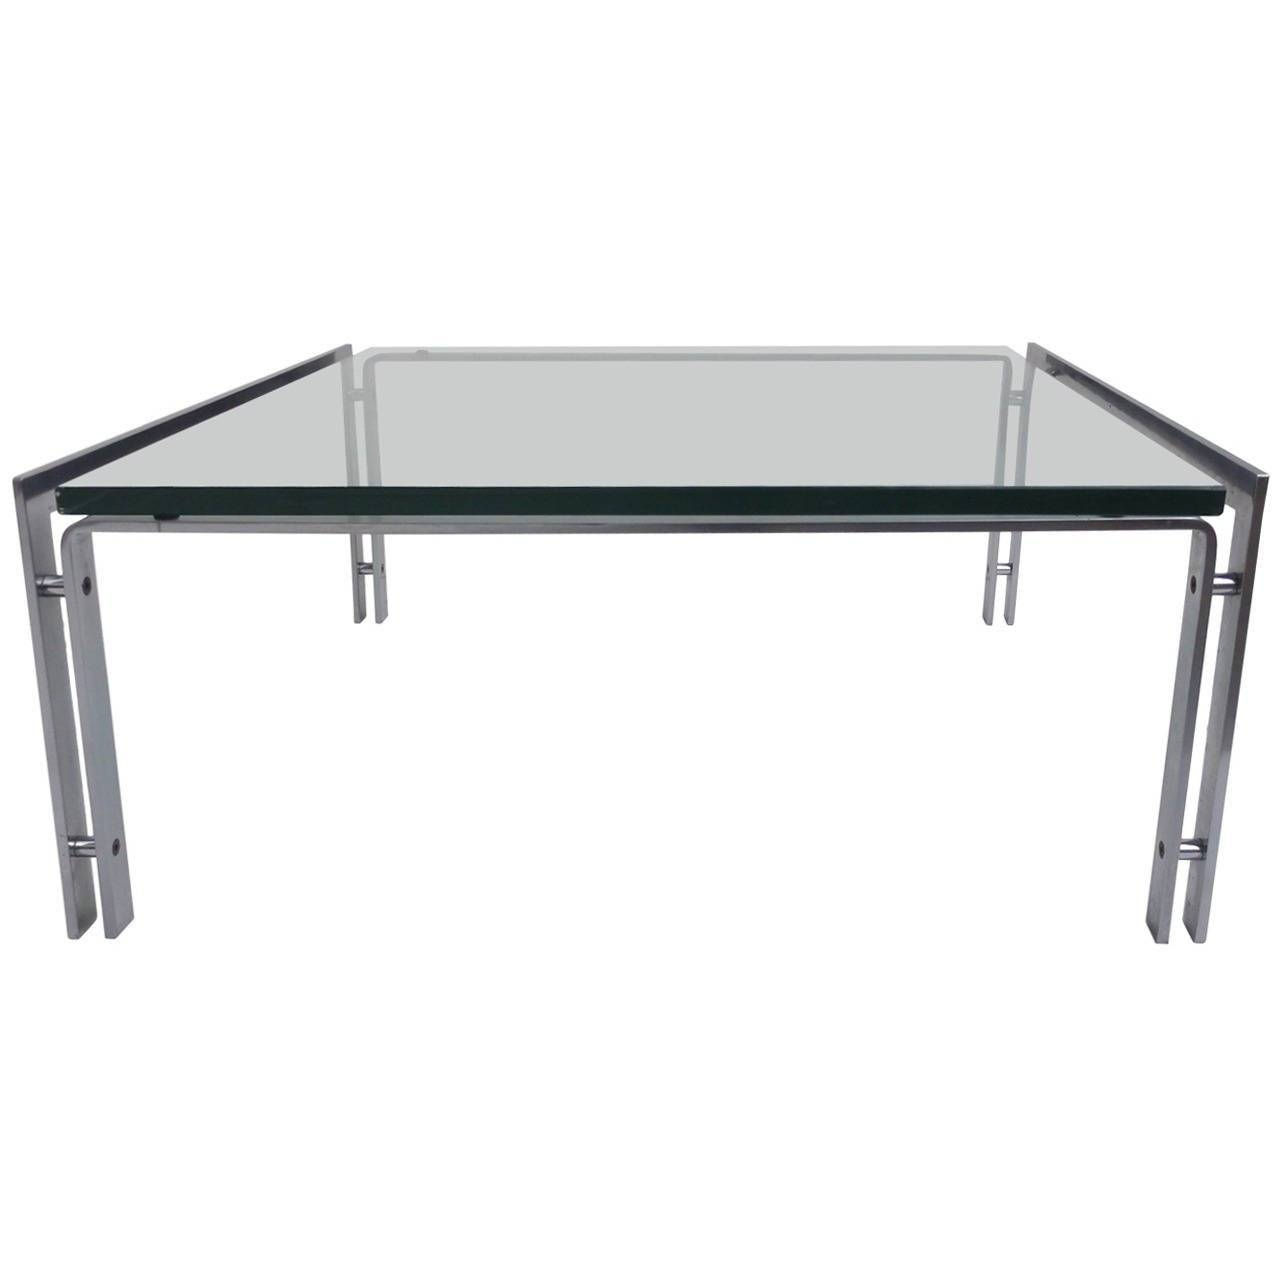 Dutch Metaform Steel And Glass Coffee Table In The Style Of Poul Within Steel And Glass Coffee Tables (View 12 of 30)